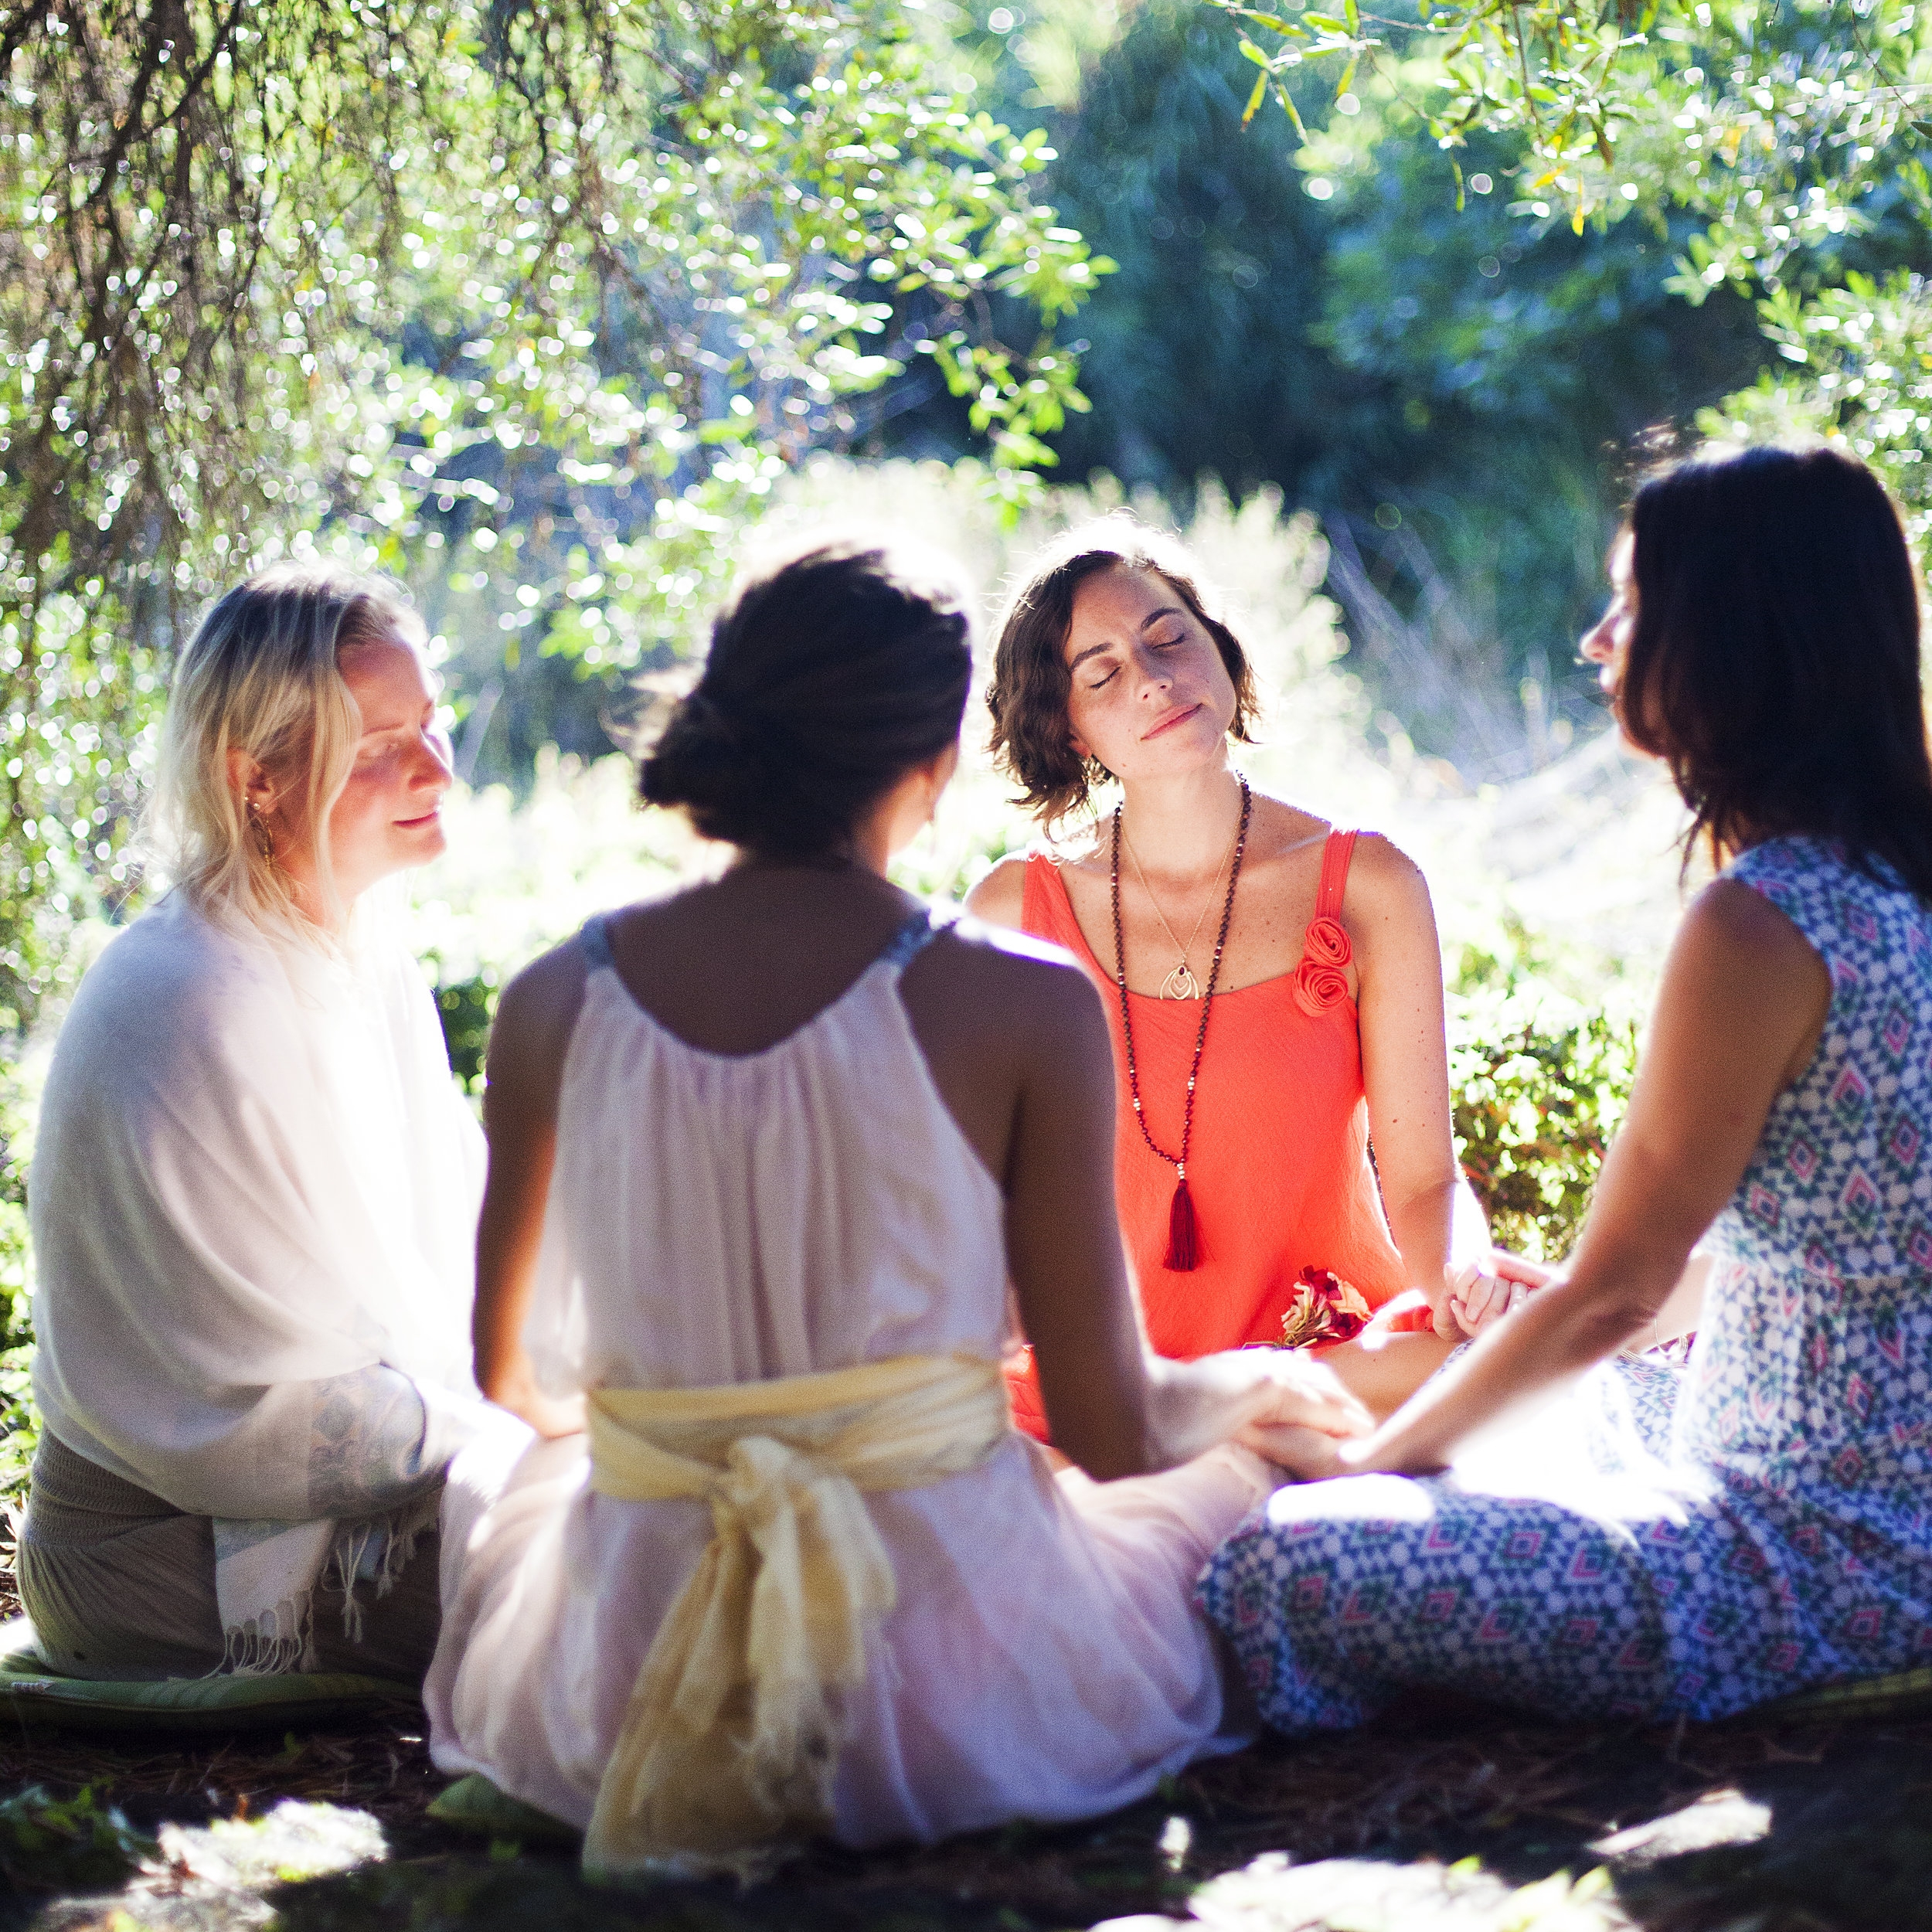 Goddess Workshops and Goddess Temples in Boulder for Women, From Karina maria Counseling.